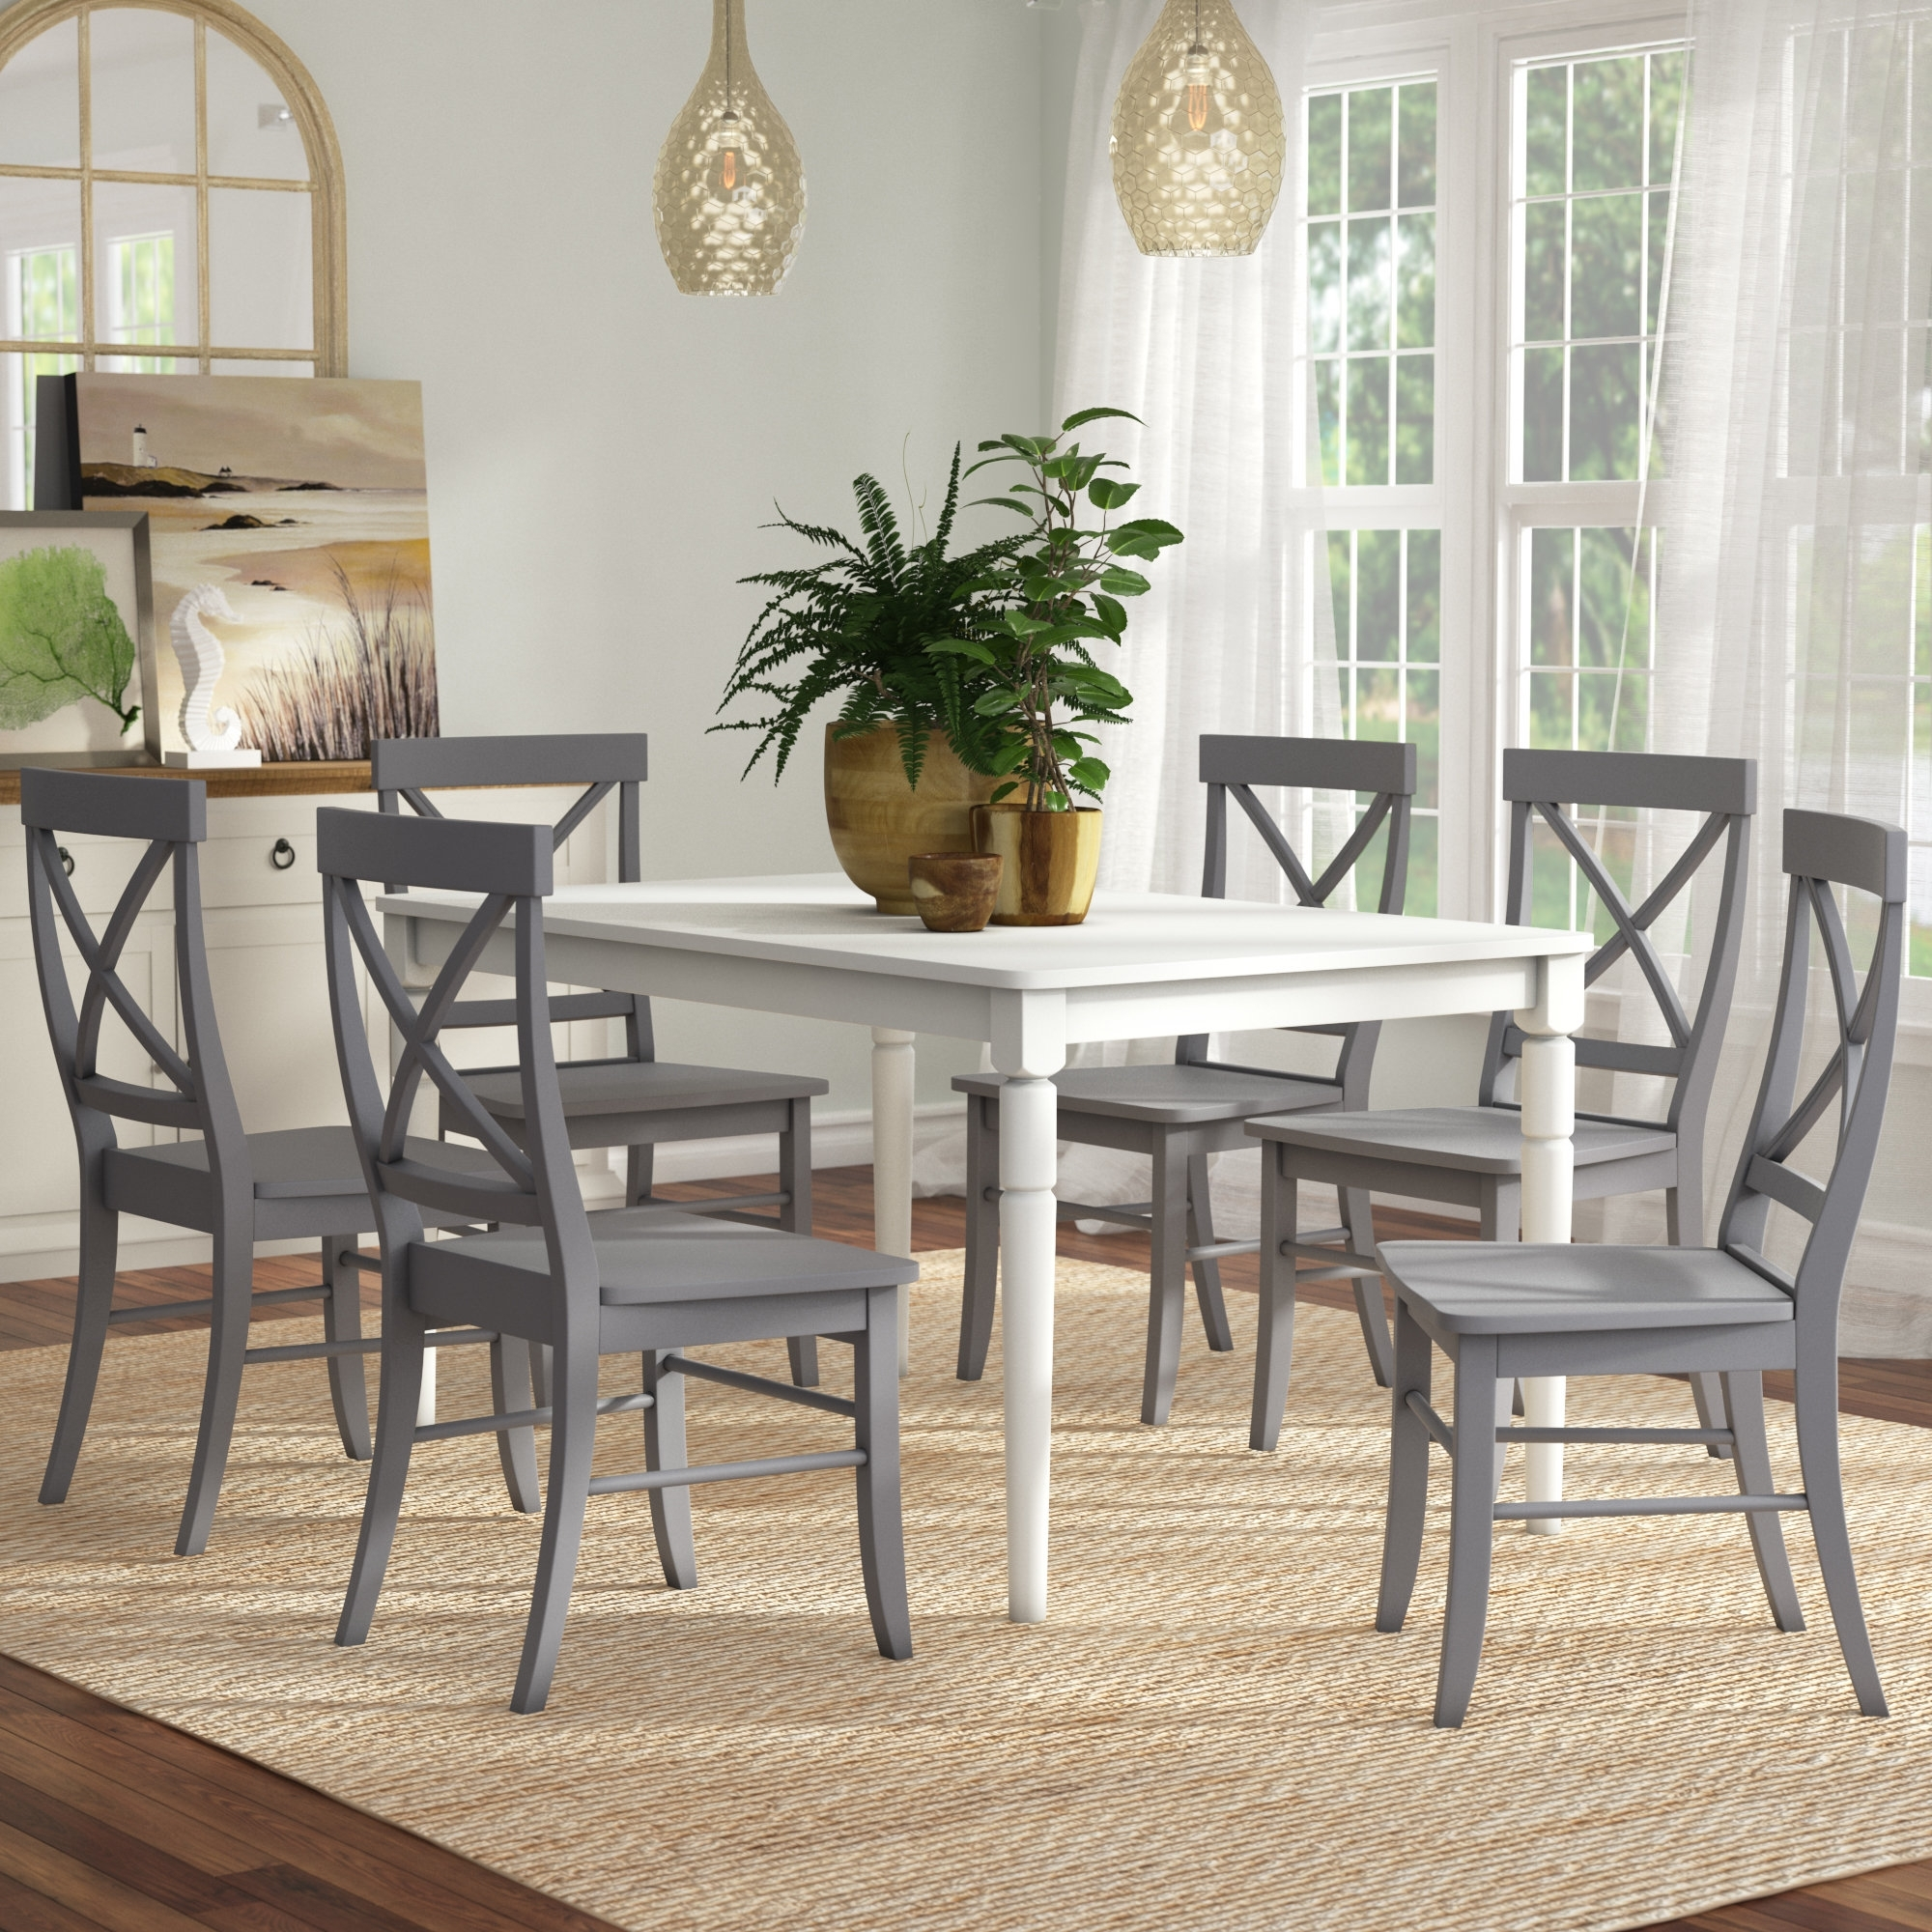 Beachcrest Home Brookwood 7 Piece Dining Set & Reviews | Wayfair With Regard To Newest Candice Ii 7 Piece Extension Rectangle Dining Sets (Image 3 of 20)